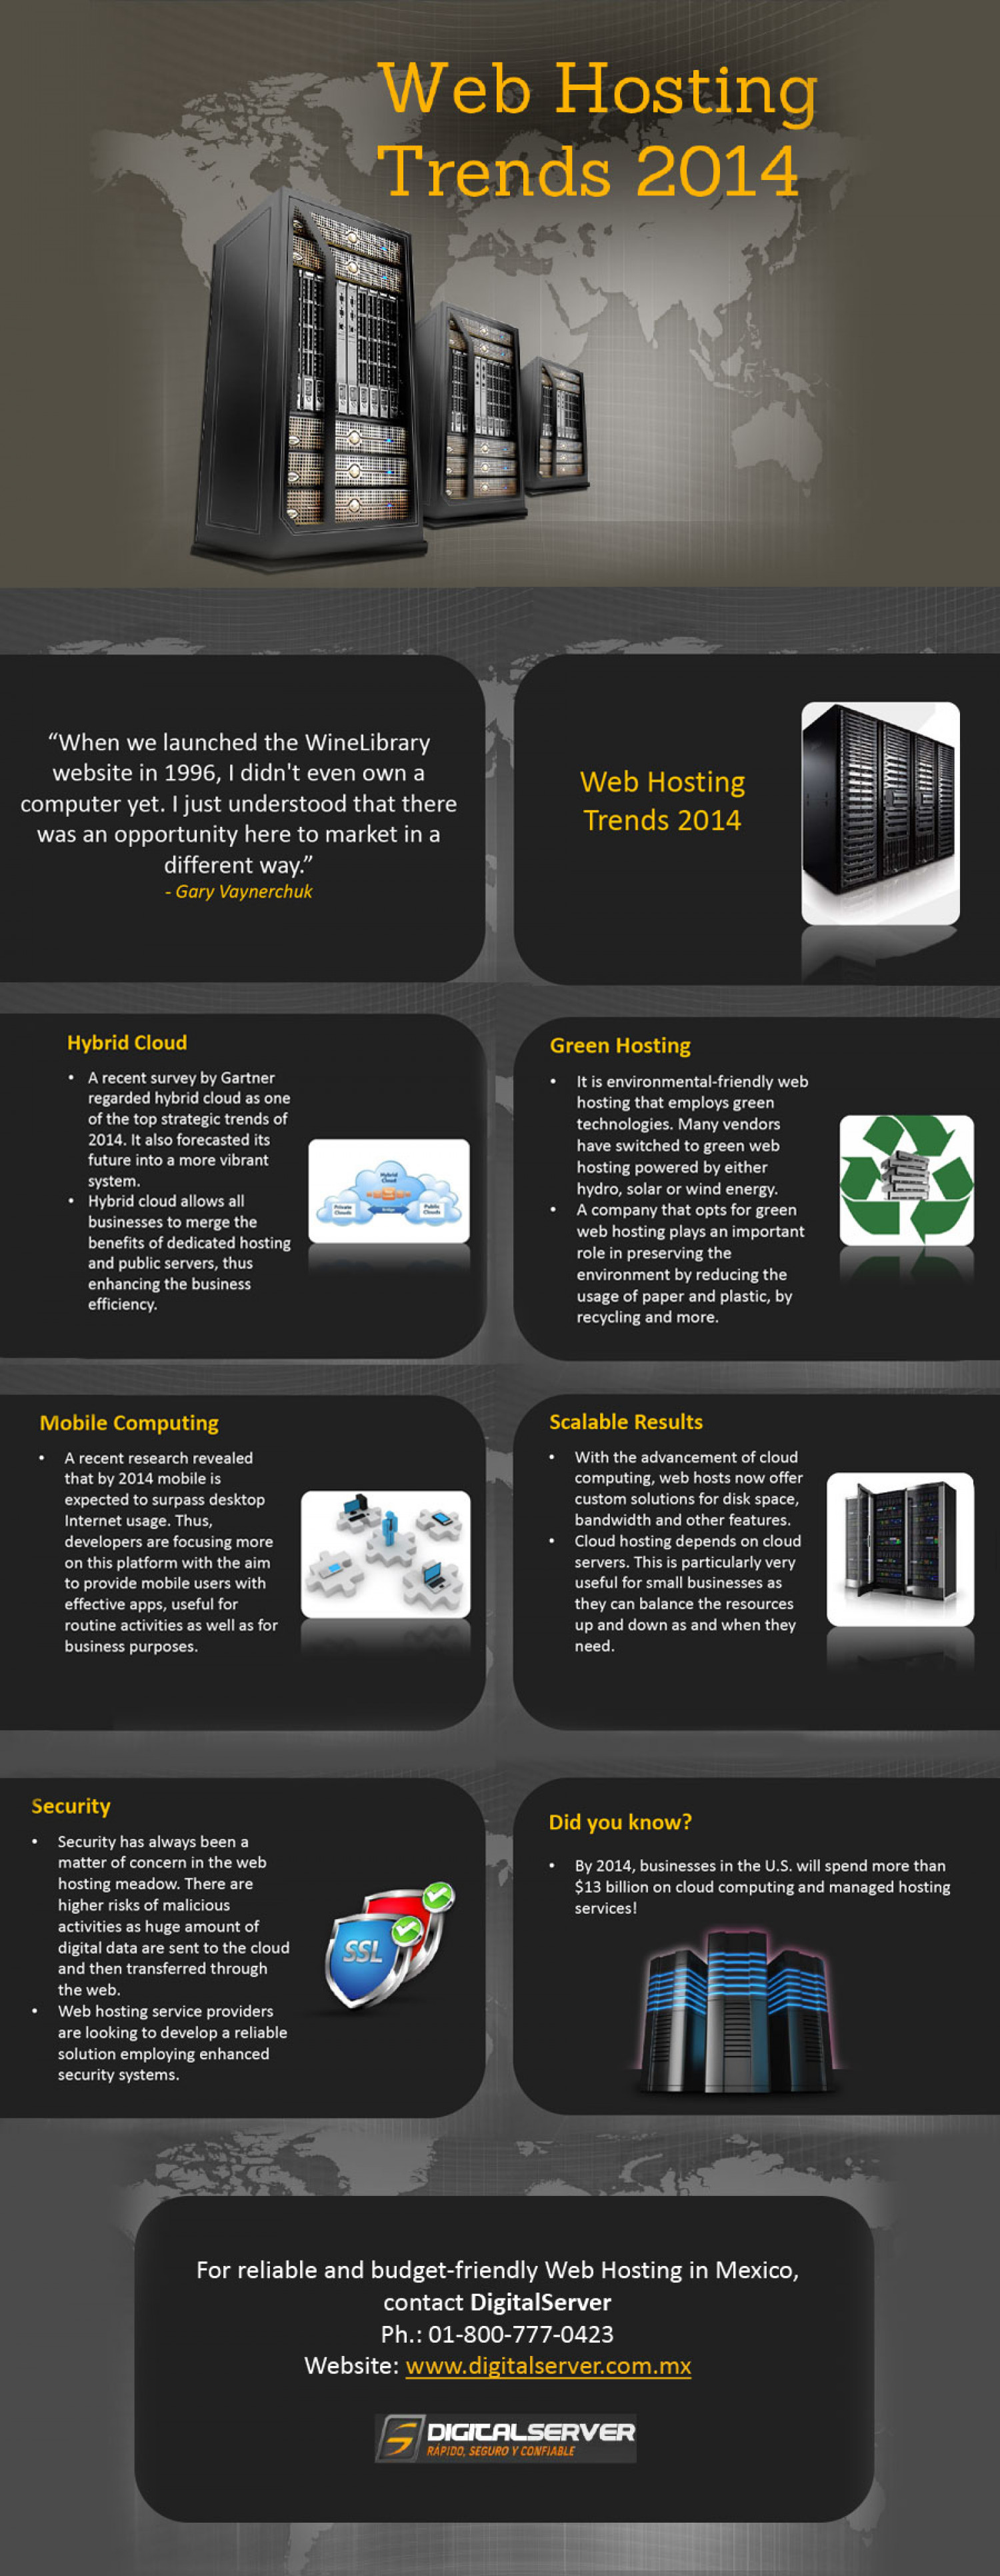 Web Hosting Trends 2014 Infographic